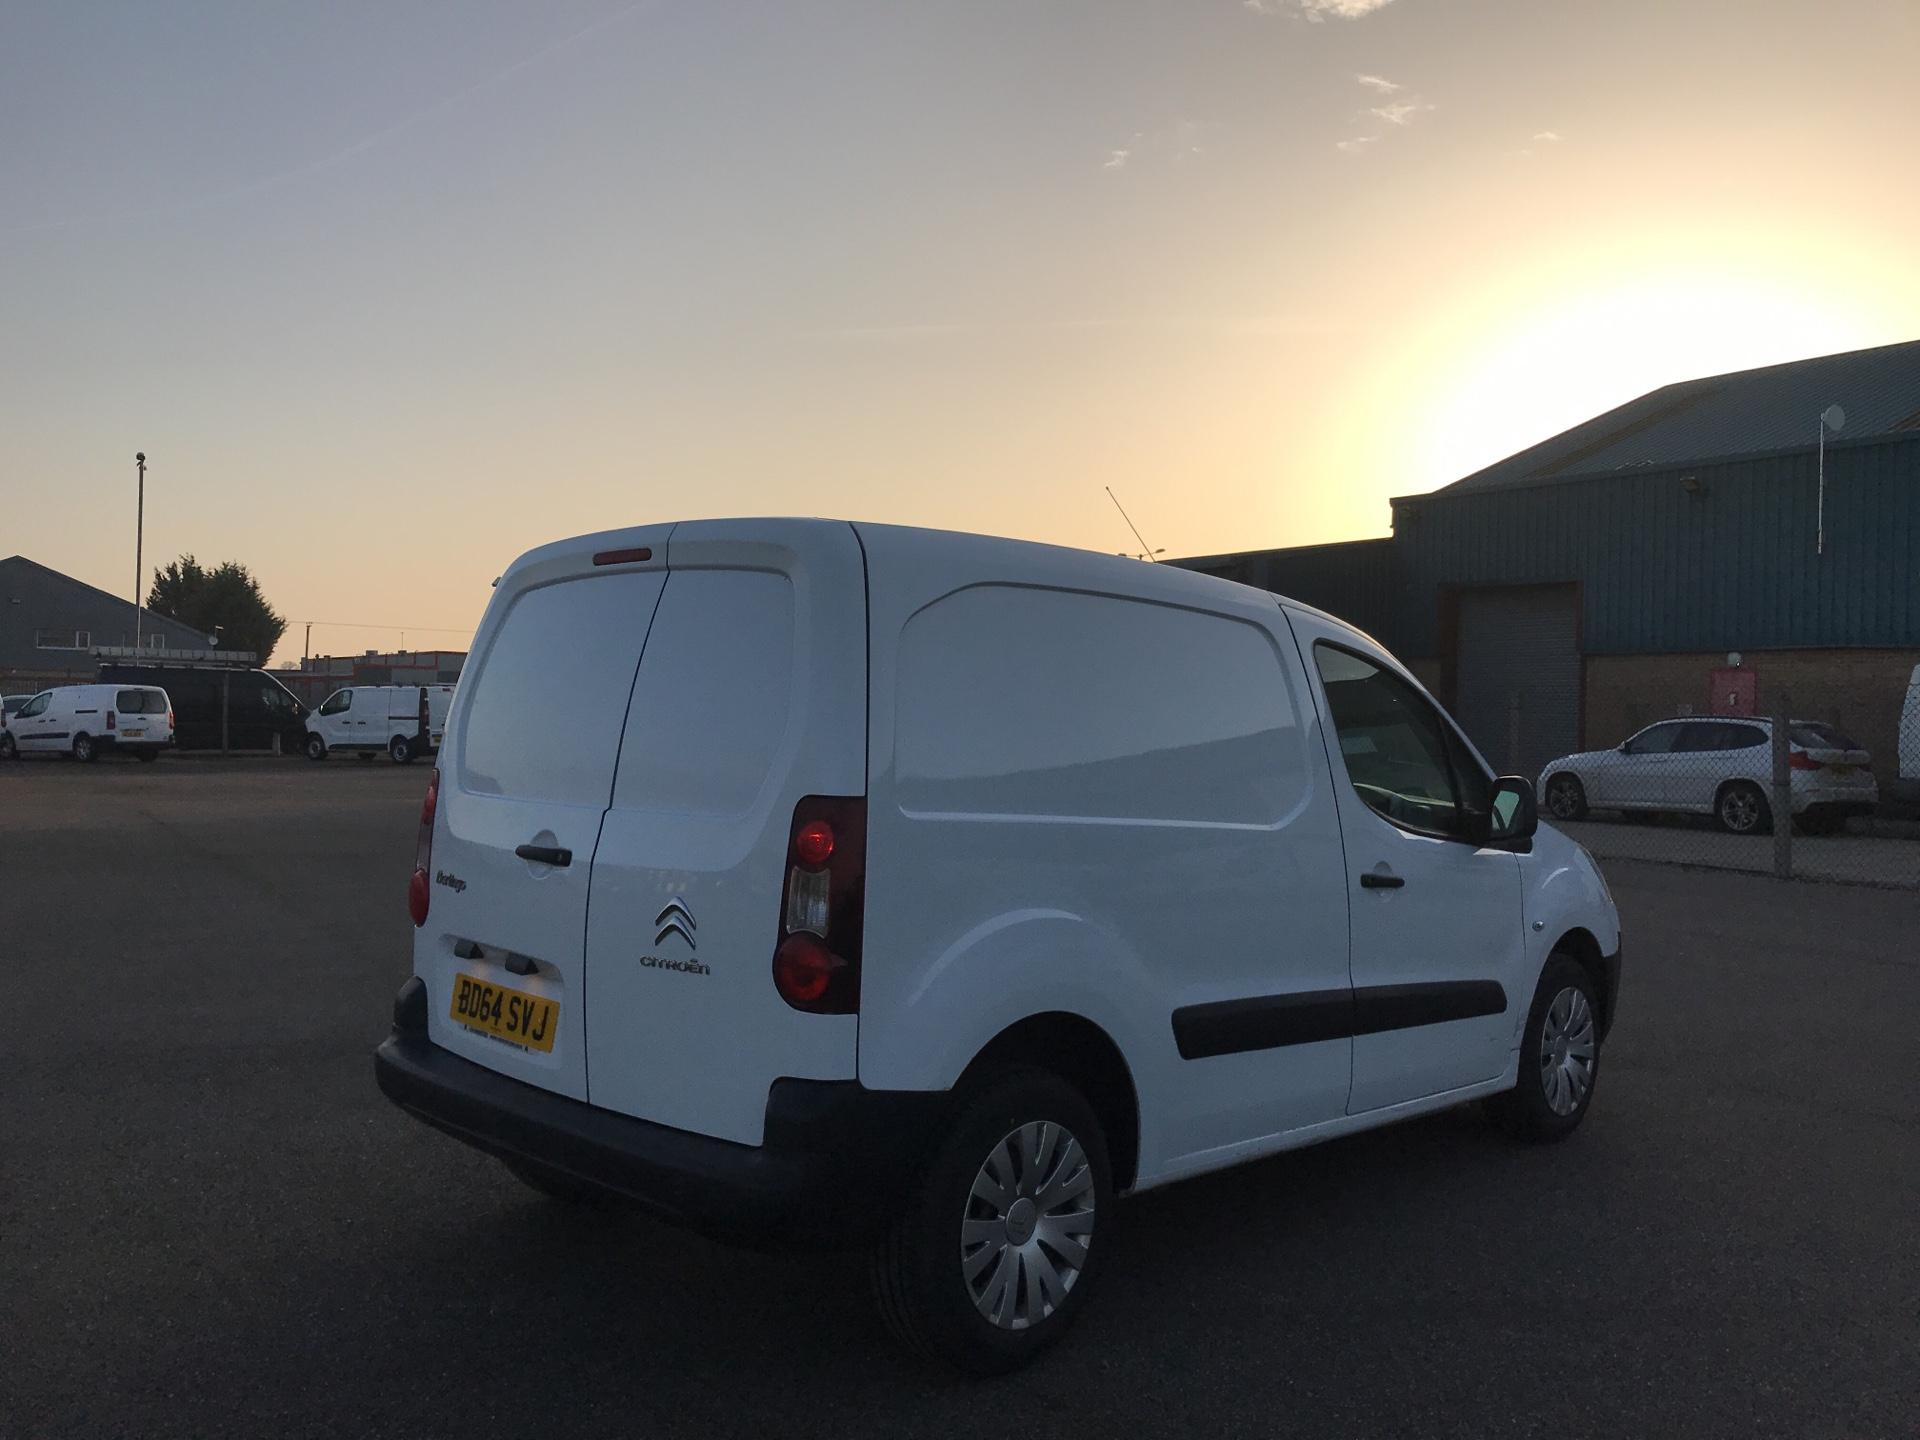 2014 Citroen Berlingo L1 DIESEL 1.6 HDI 625KG X 90PS (SLD) EURO 5. VALUE RANGE VEHICLE - CONDITION REFLECTED IN PRICE (BD64SVJ) Image 3